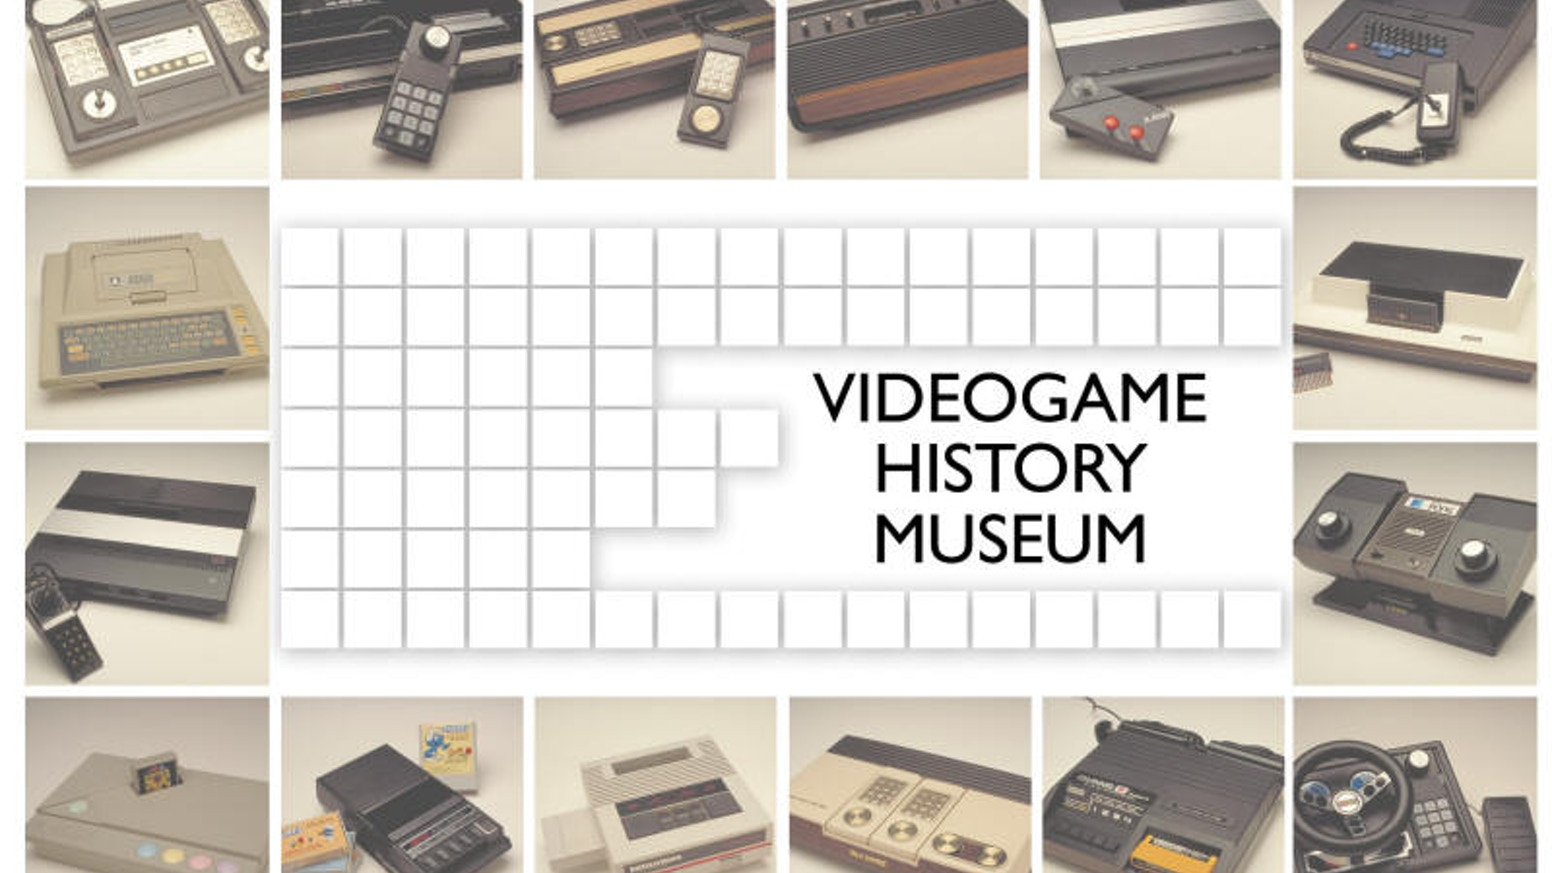 The Videogame History Museum by Videogame History Museum